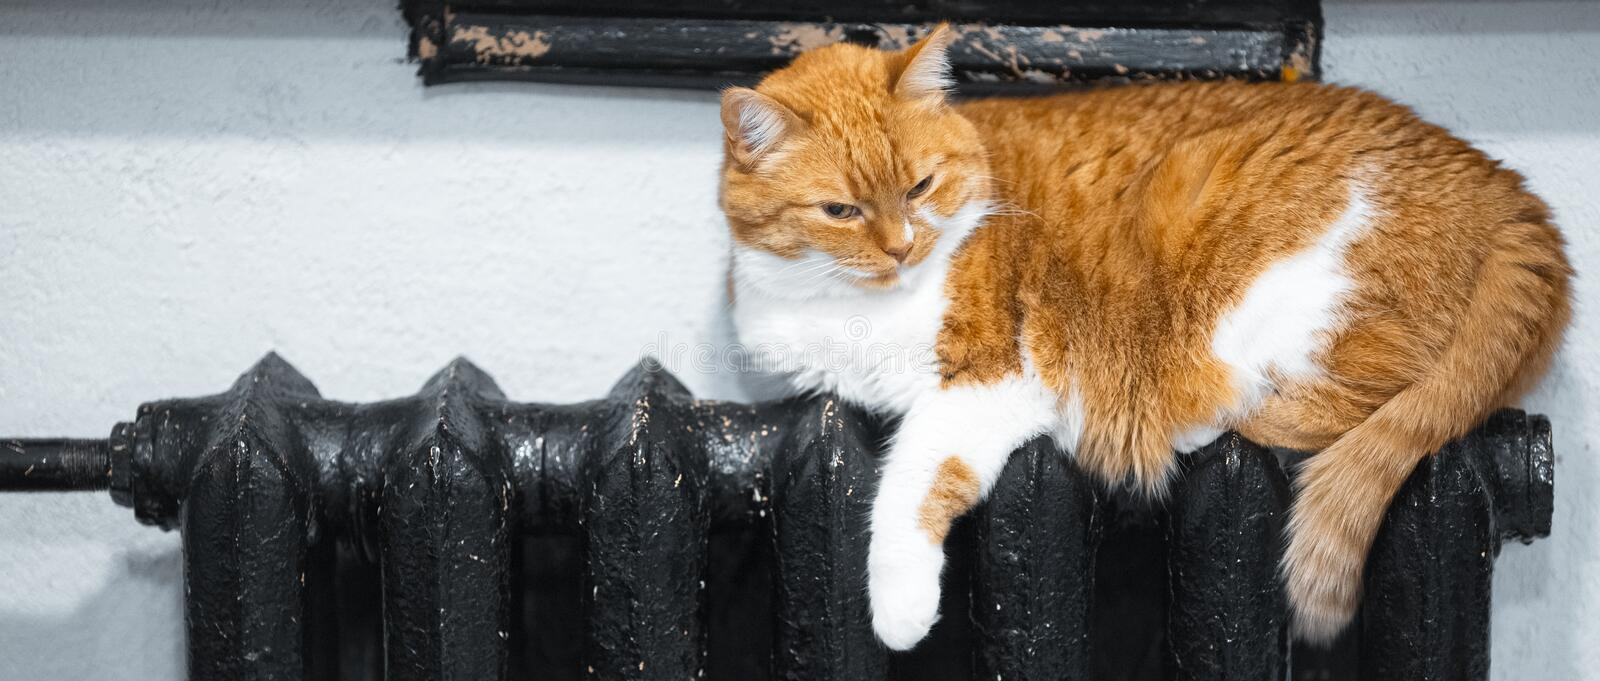 Lazy day of cute red white cat lying on black hot radiator.  royalty free stock photo